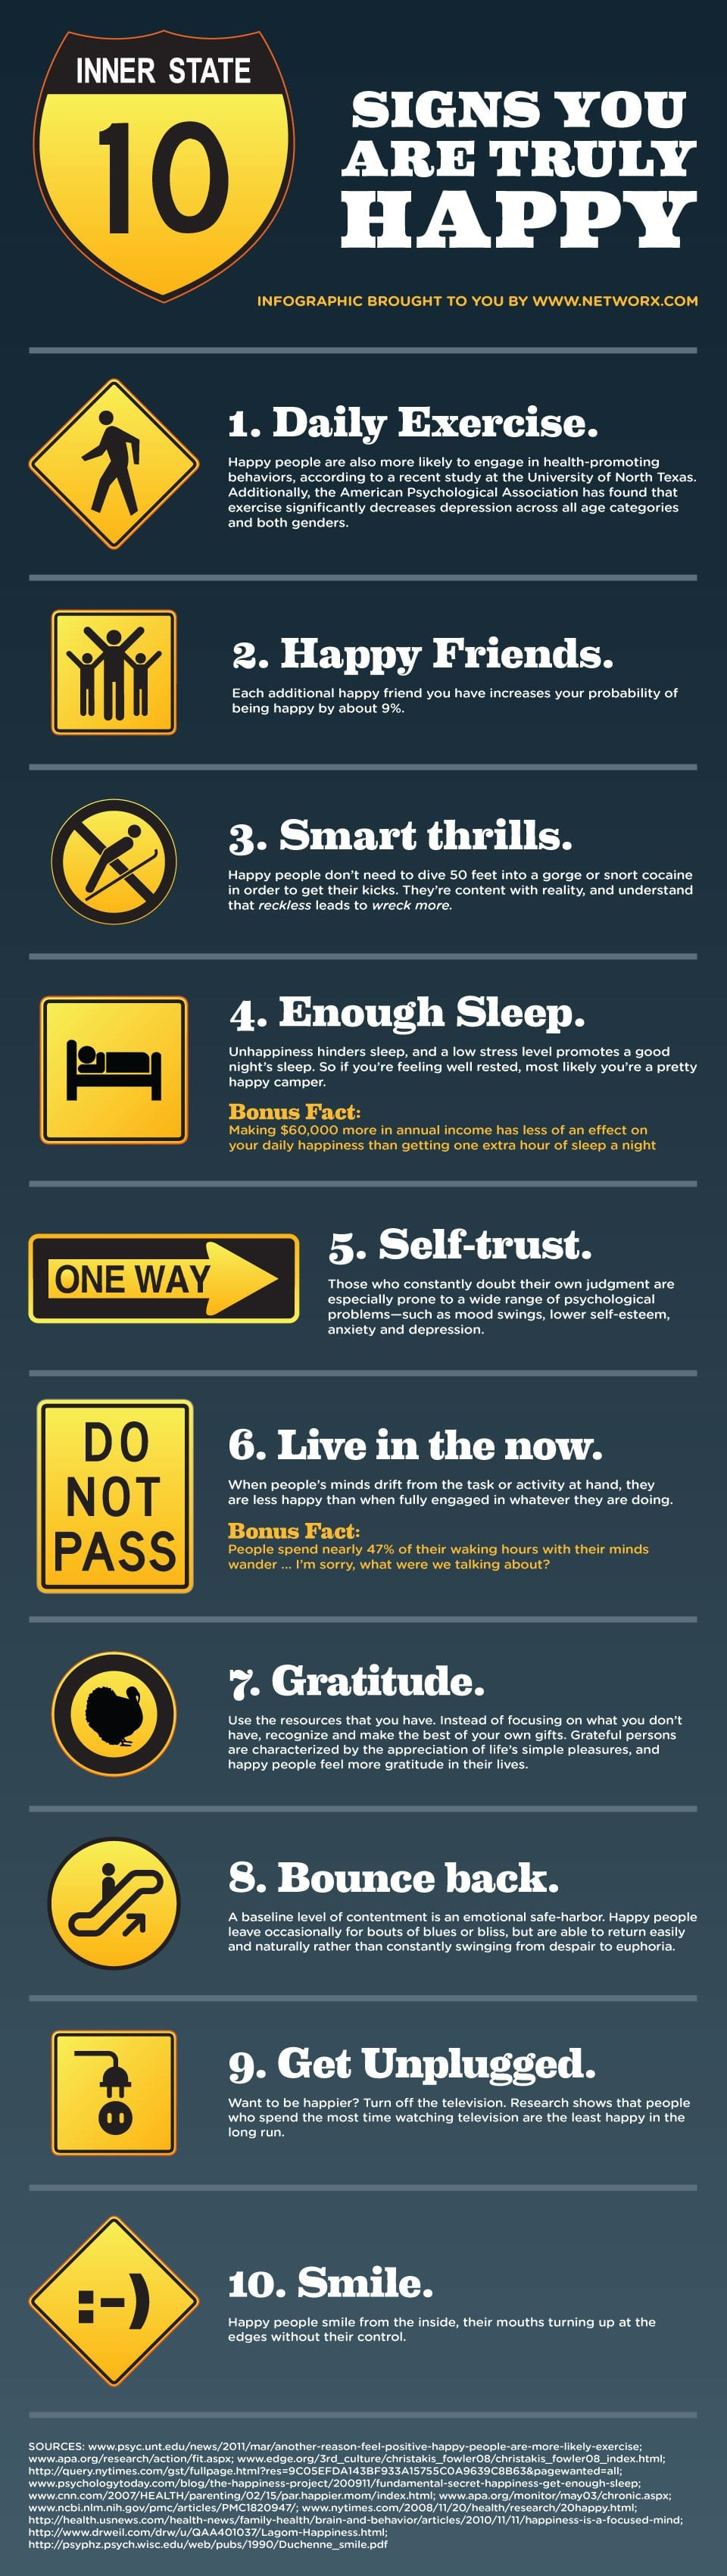 10 Signs You Are Truly Happy [Infographic]